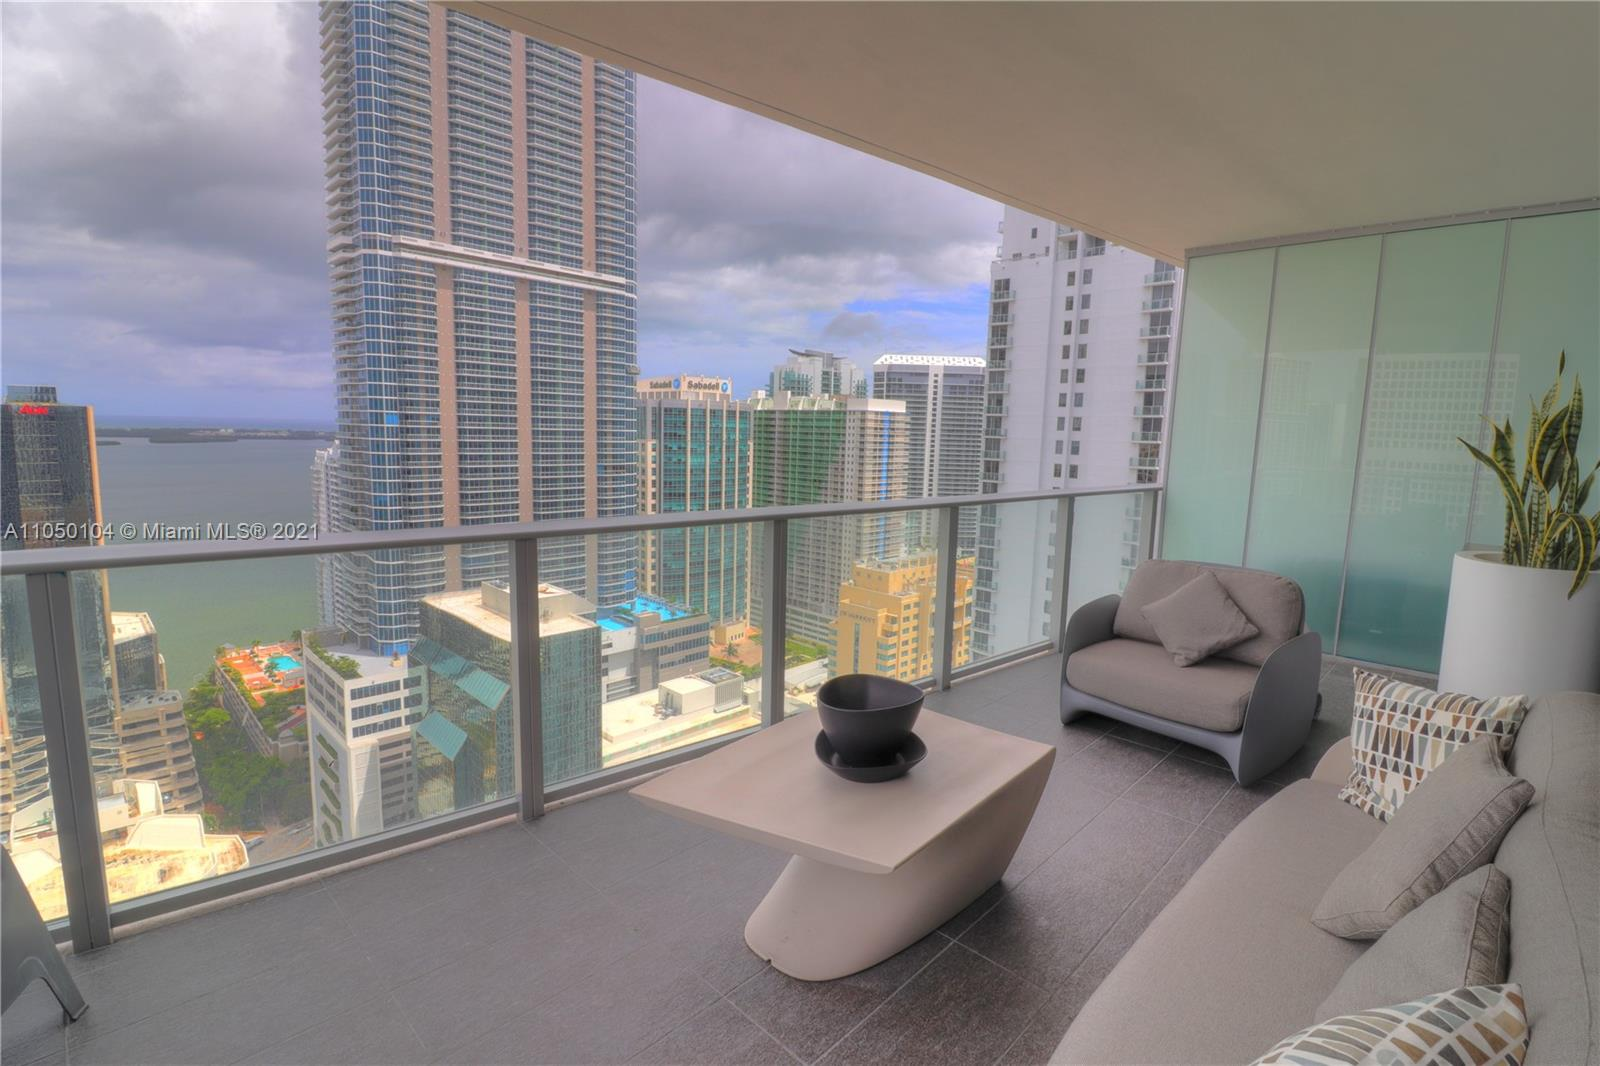 Incredible corner unit at 1010 Brickell Condo, best line in the building overlooking the bay. Private elevator with 3 beds, 3 baths, + den, PERFECT FOR HOME OFFICE. 9-foot ceiling heights, balcony with barbecue/ summer kitchen. Marble floors , Top of the line Smeg appliances! 2 Parking Space included and storage unit. Great amenities for families; outdoor movie theatre, restaurant & swimming pool at 50th floor roof top; spa with jacuzzi, message & treatments rooms, sauna & steam room; basketball, mini soccer & racquetball courts, kids indoor playground, indoor heated swimming pool, fitness center, party room, arcade room with bowling virtual golf, and more!.